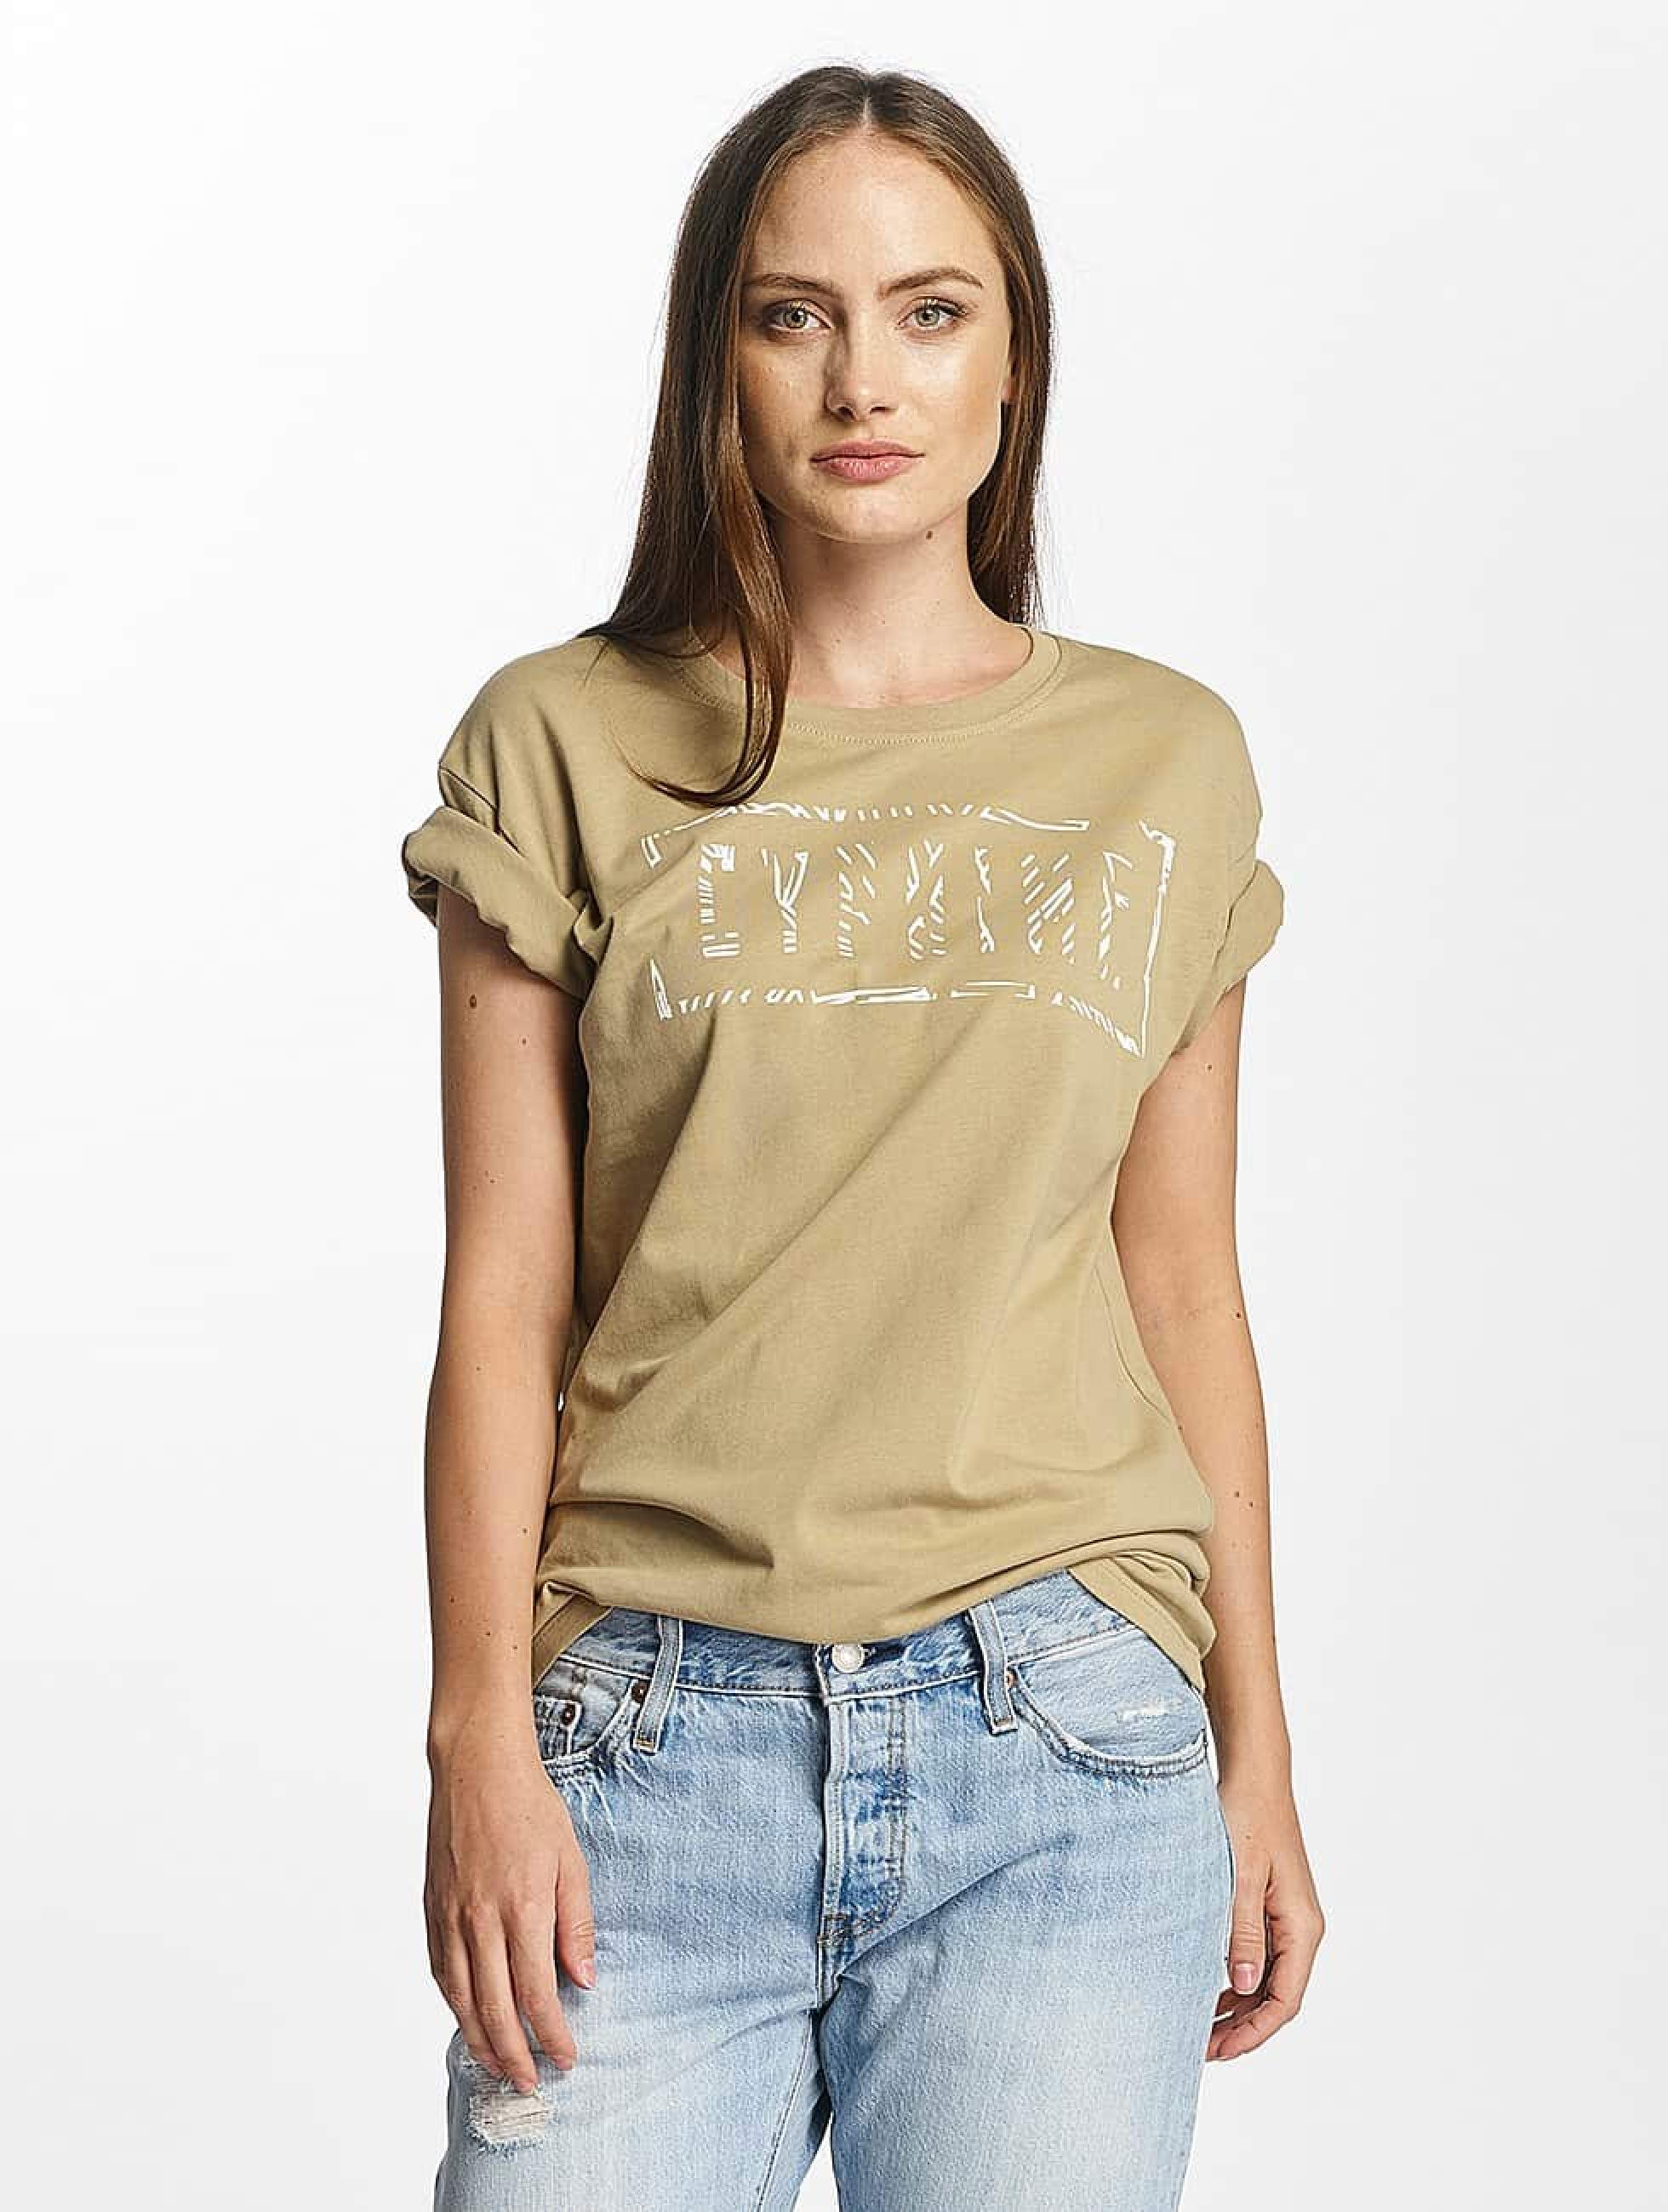 Cyprime / T-Shirt Cerium Oversized in beige XL